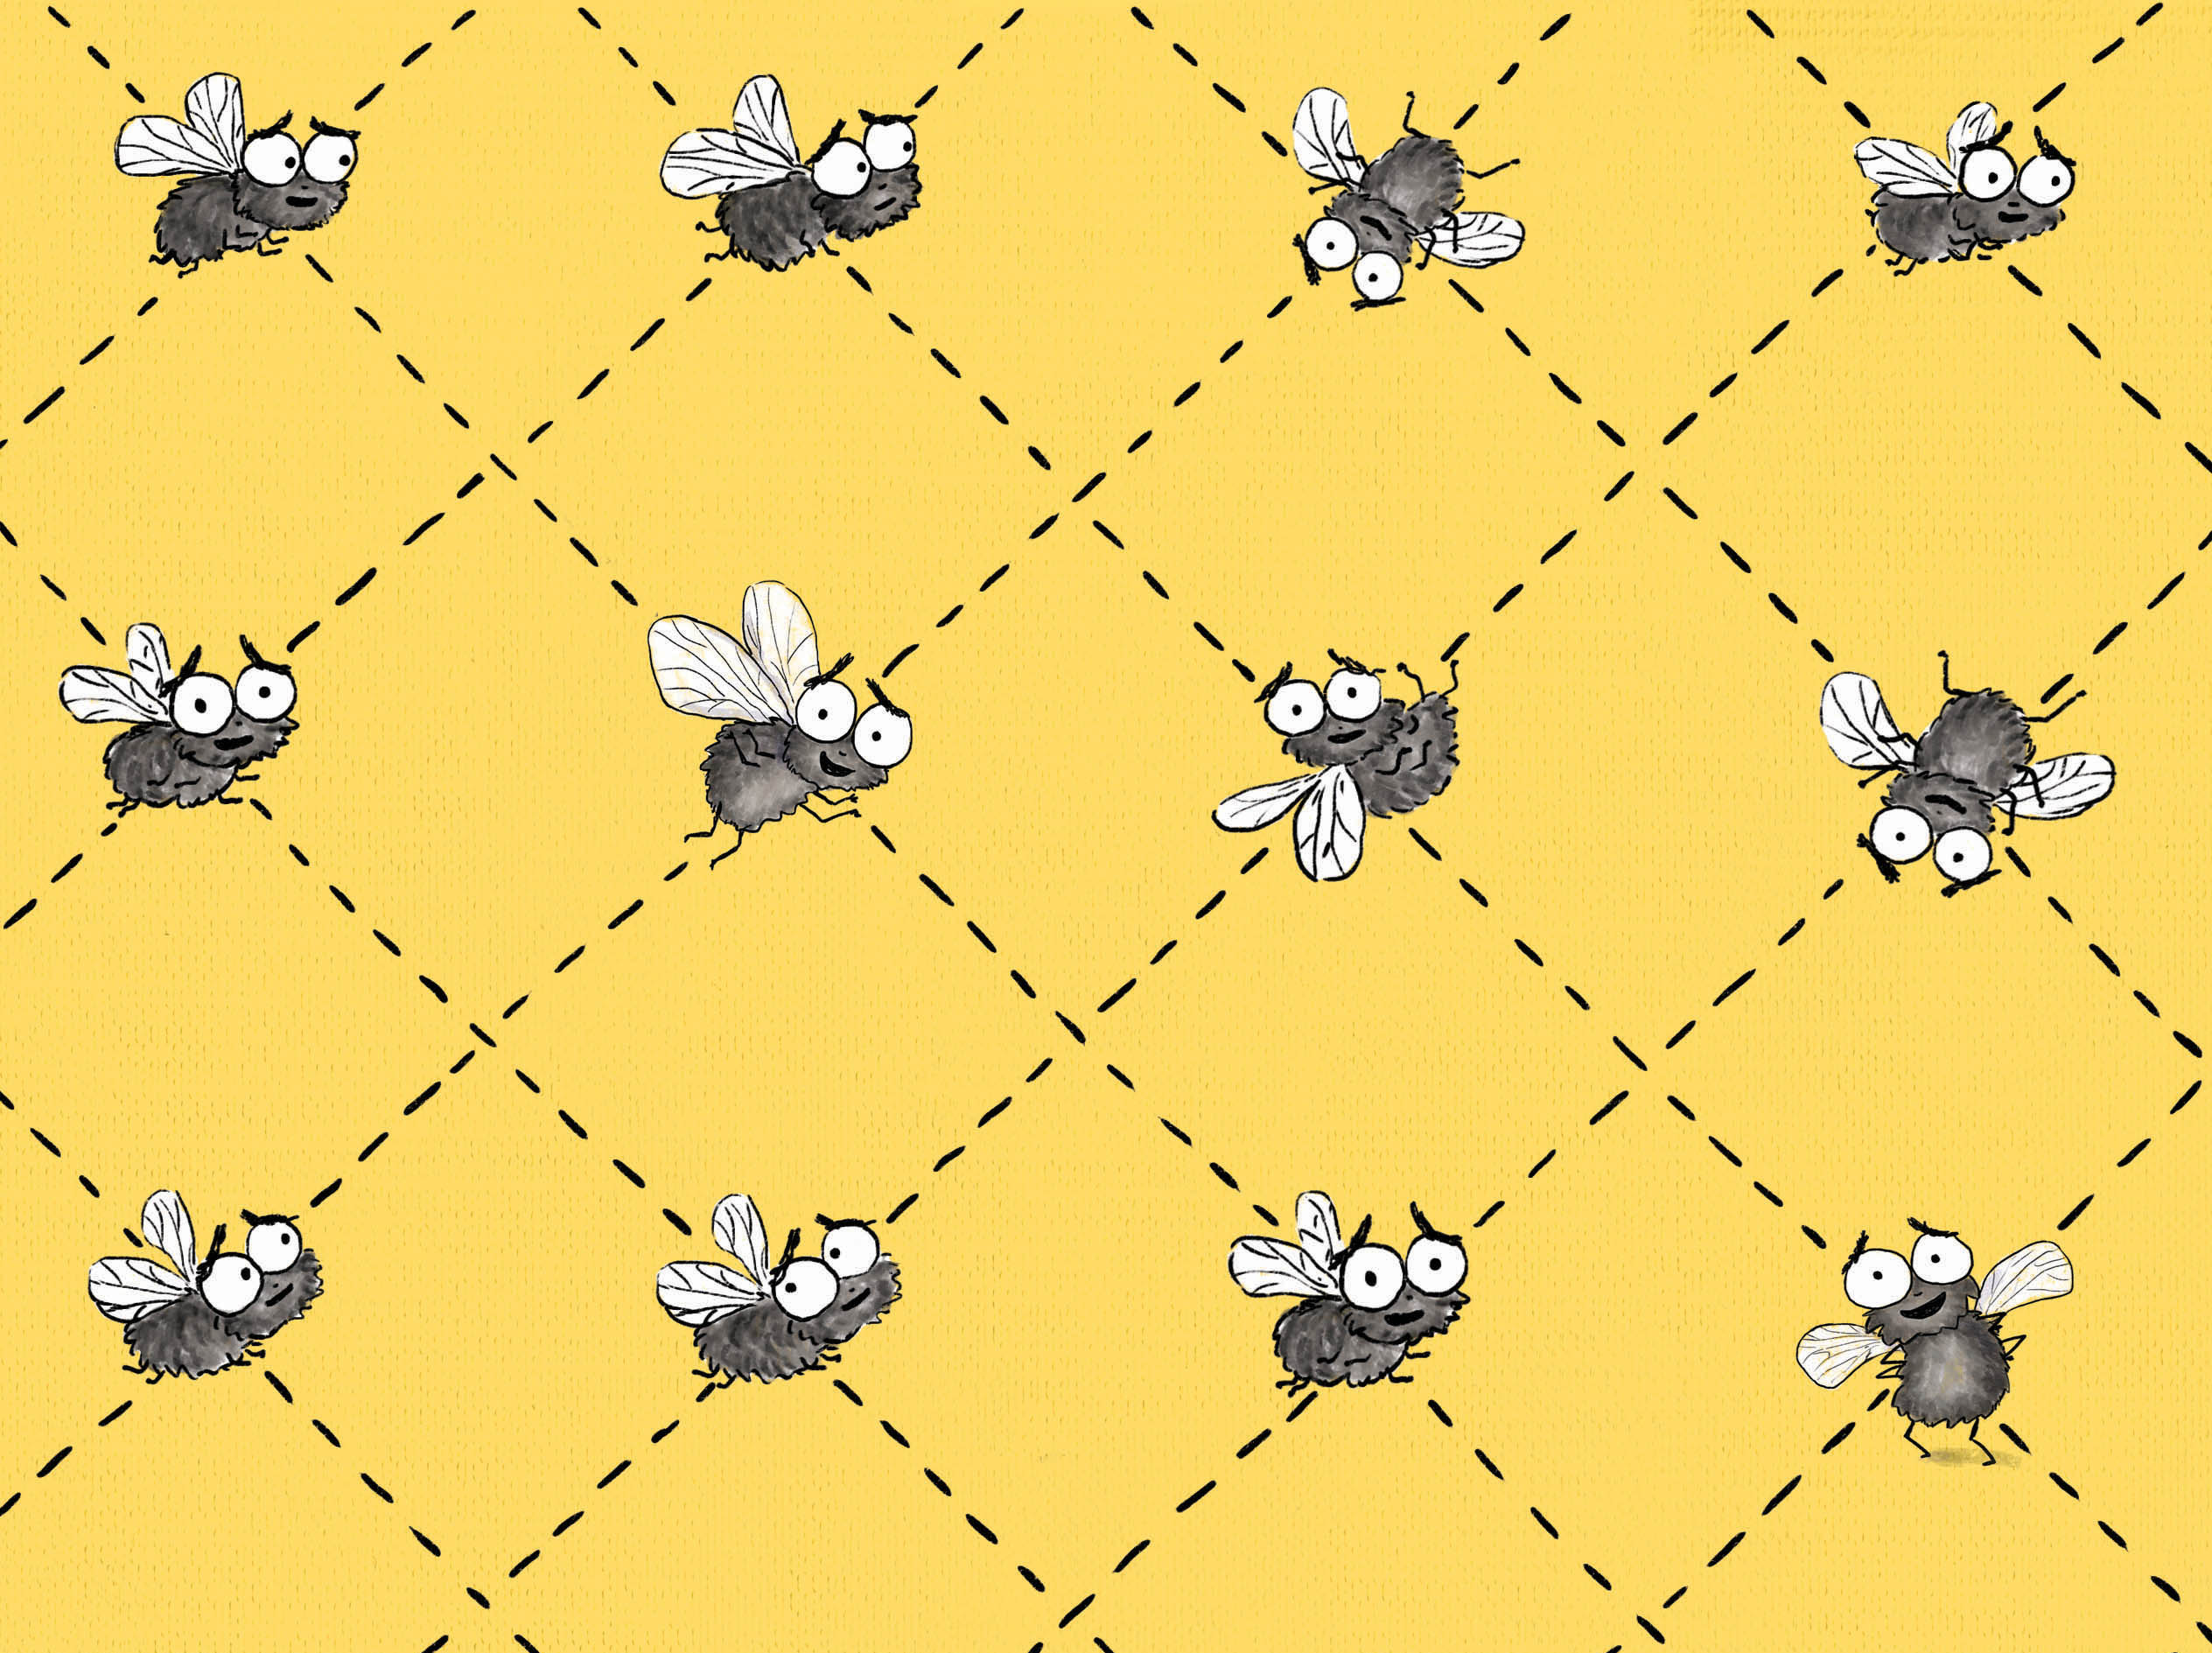 Fly endpaper pattern design